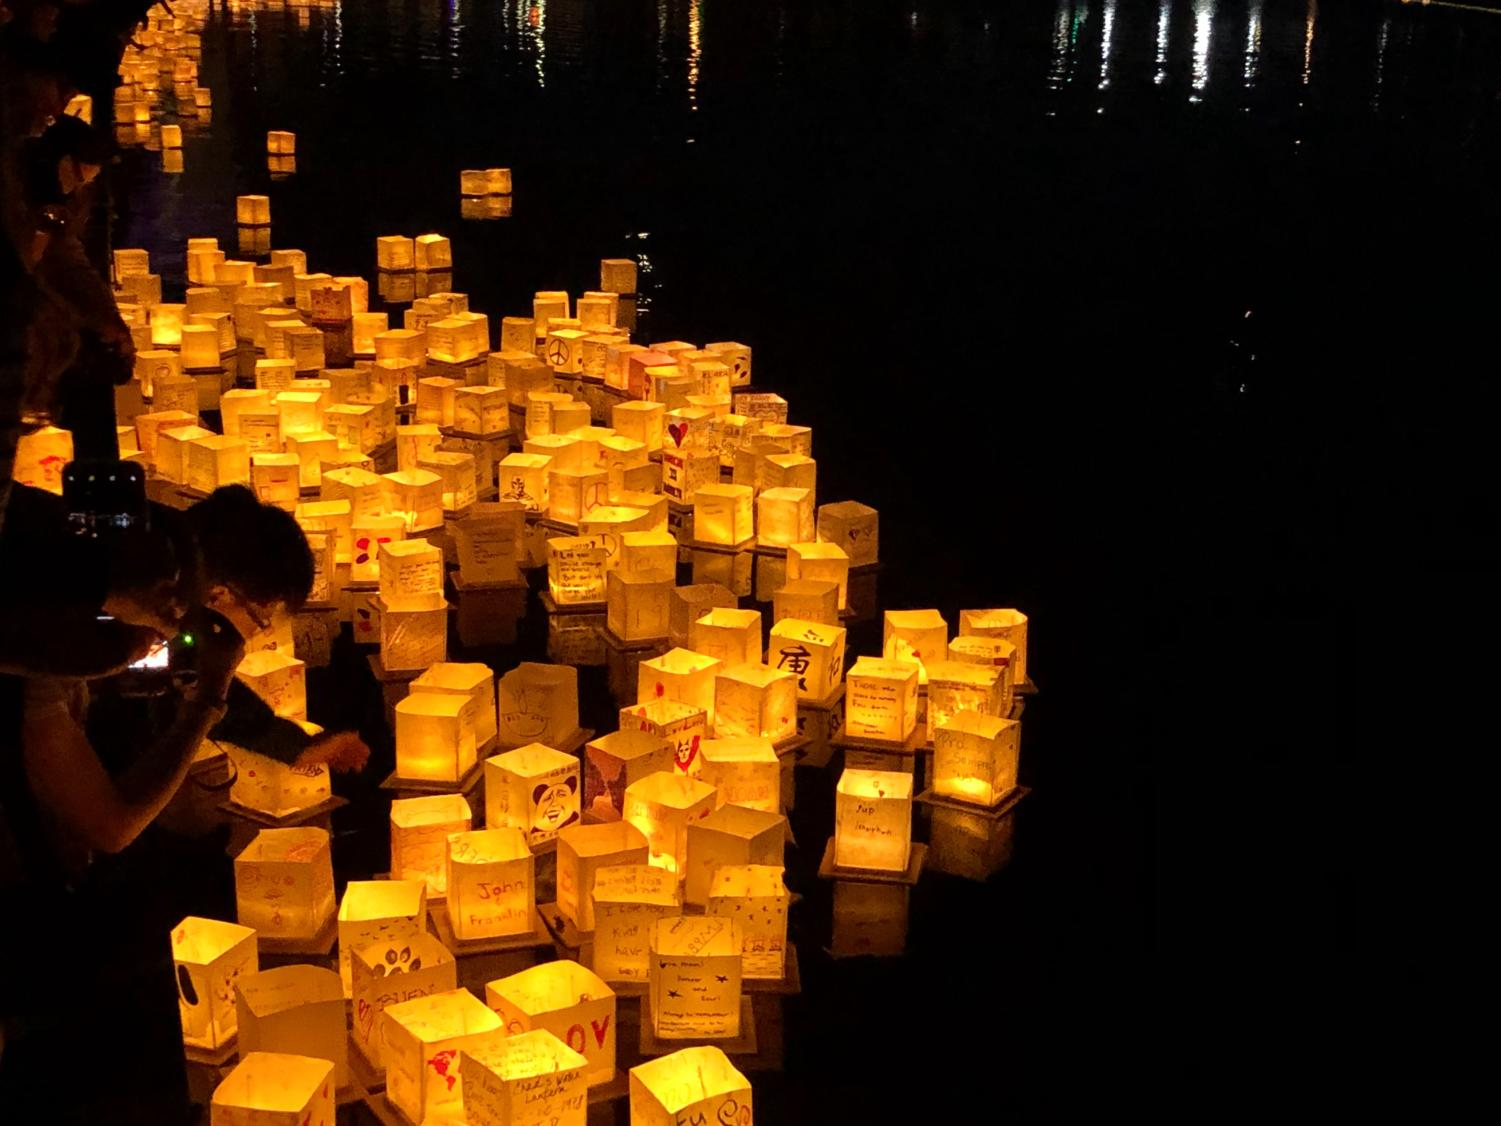 Lanterns are placed in the water as they begin to light up the festival